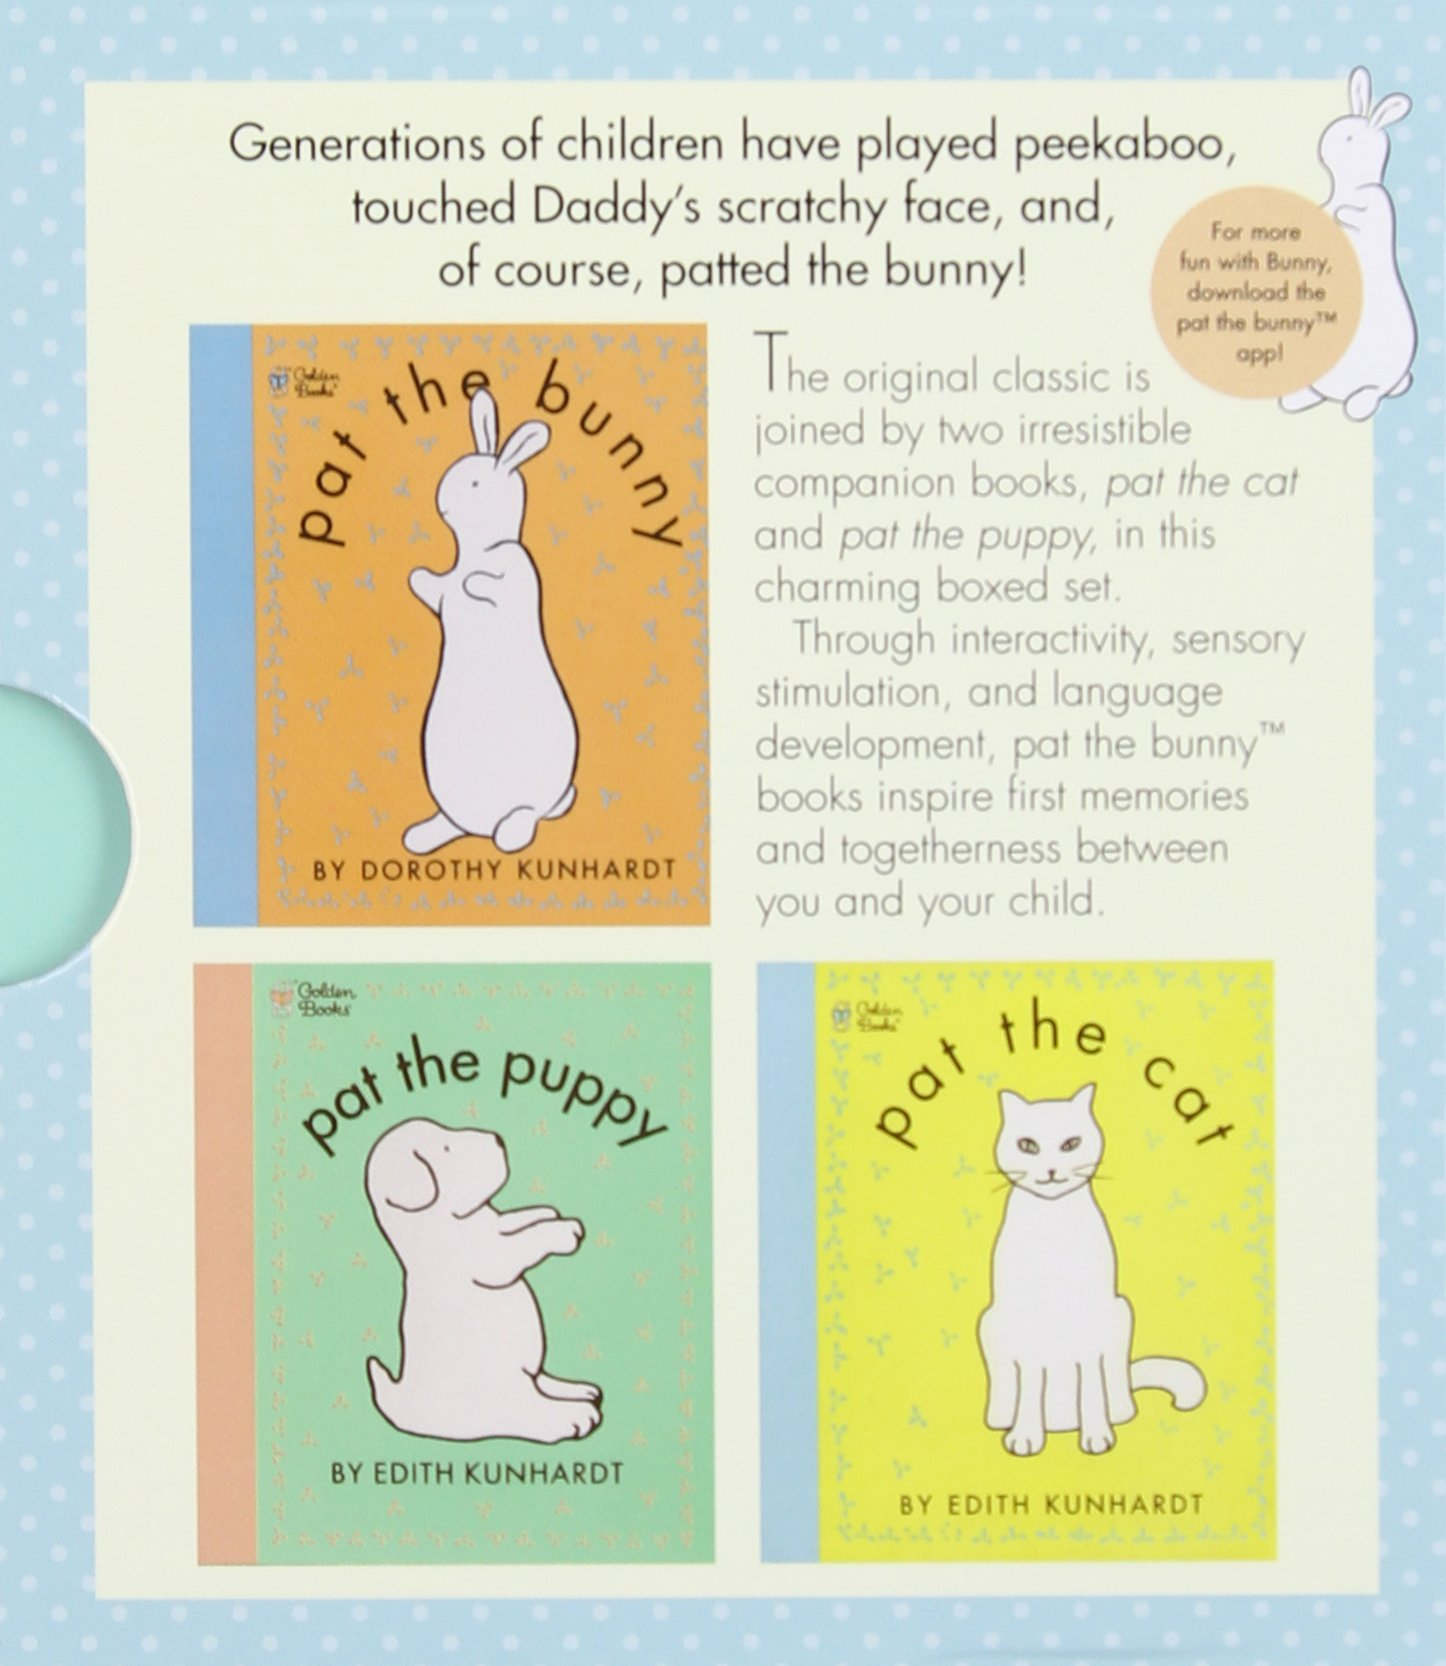 Pat the Bunny: First Books for Baby (Pat the Bunny) (Touch-and-Feel) by Golden Books (Image #3)